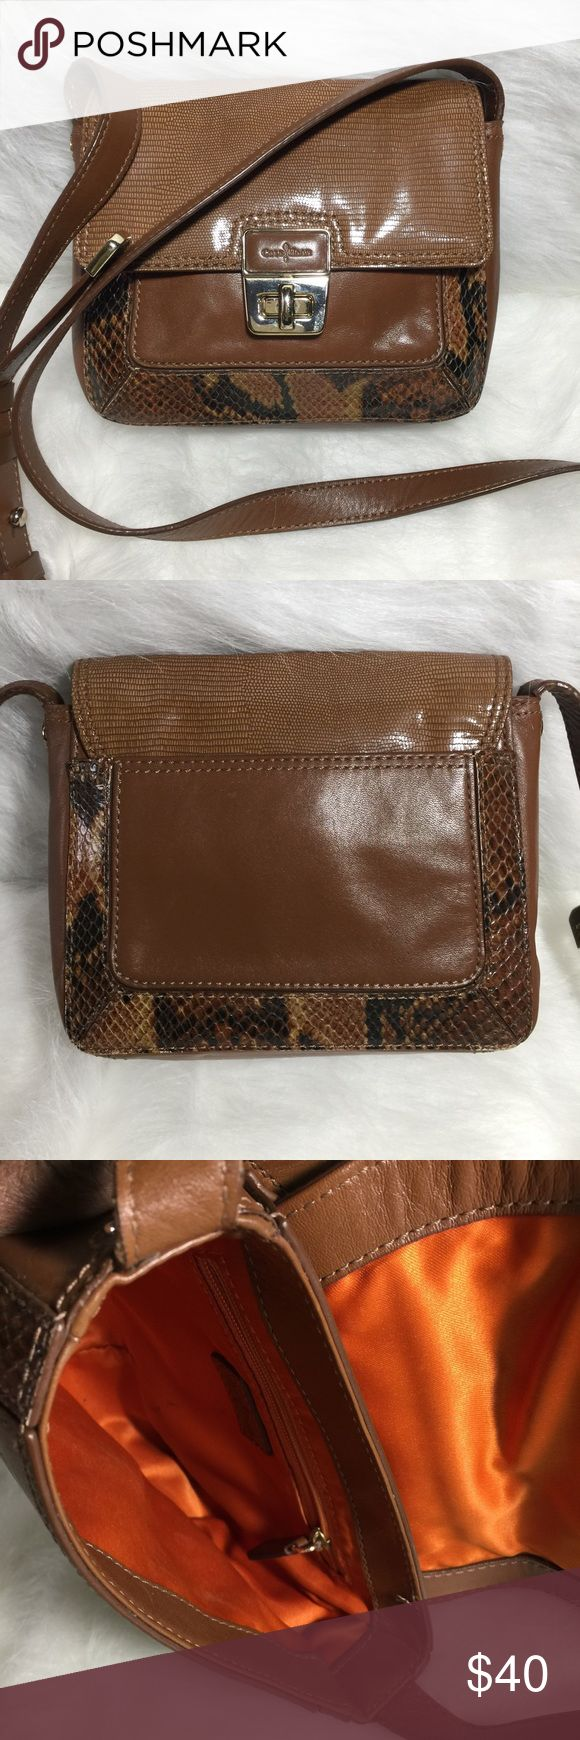 Cole Haan leather Cross-body purse Well taken care of Cole Haan purse, used a few times, inside clean. Cole Haan Bags Crossbody Bags